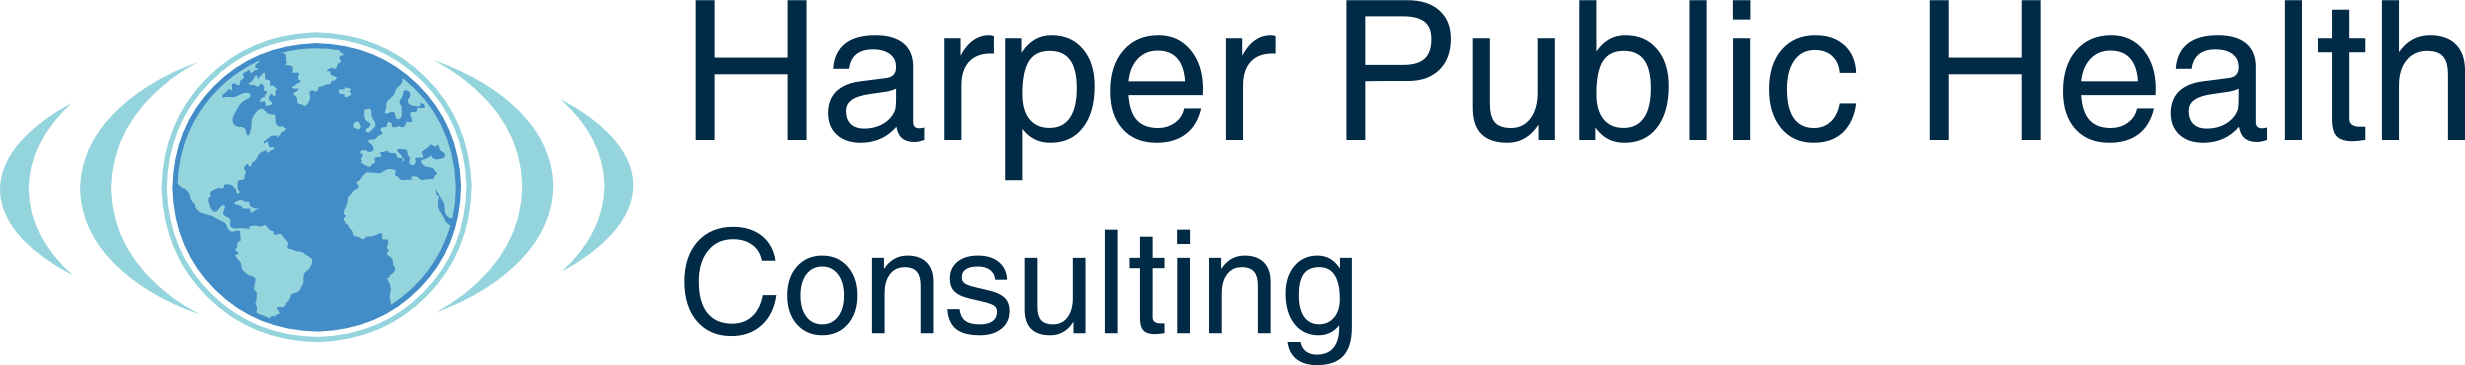 Harper Public Health Consulting Limited